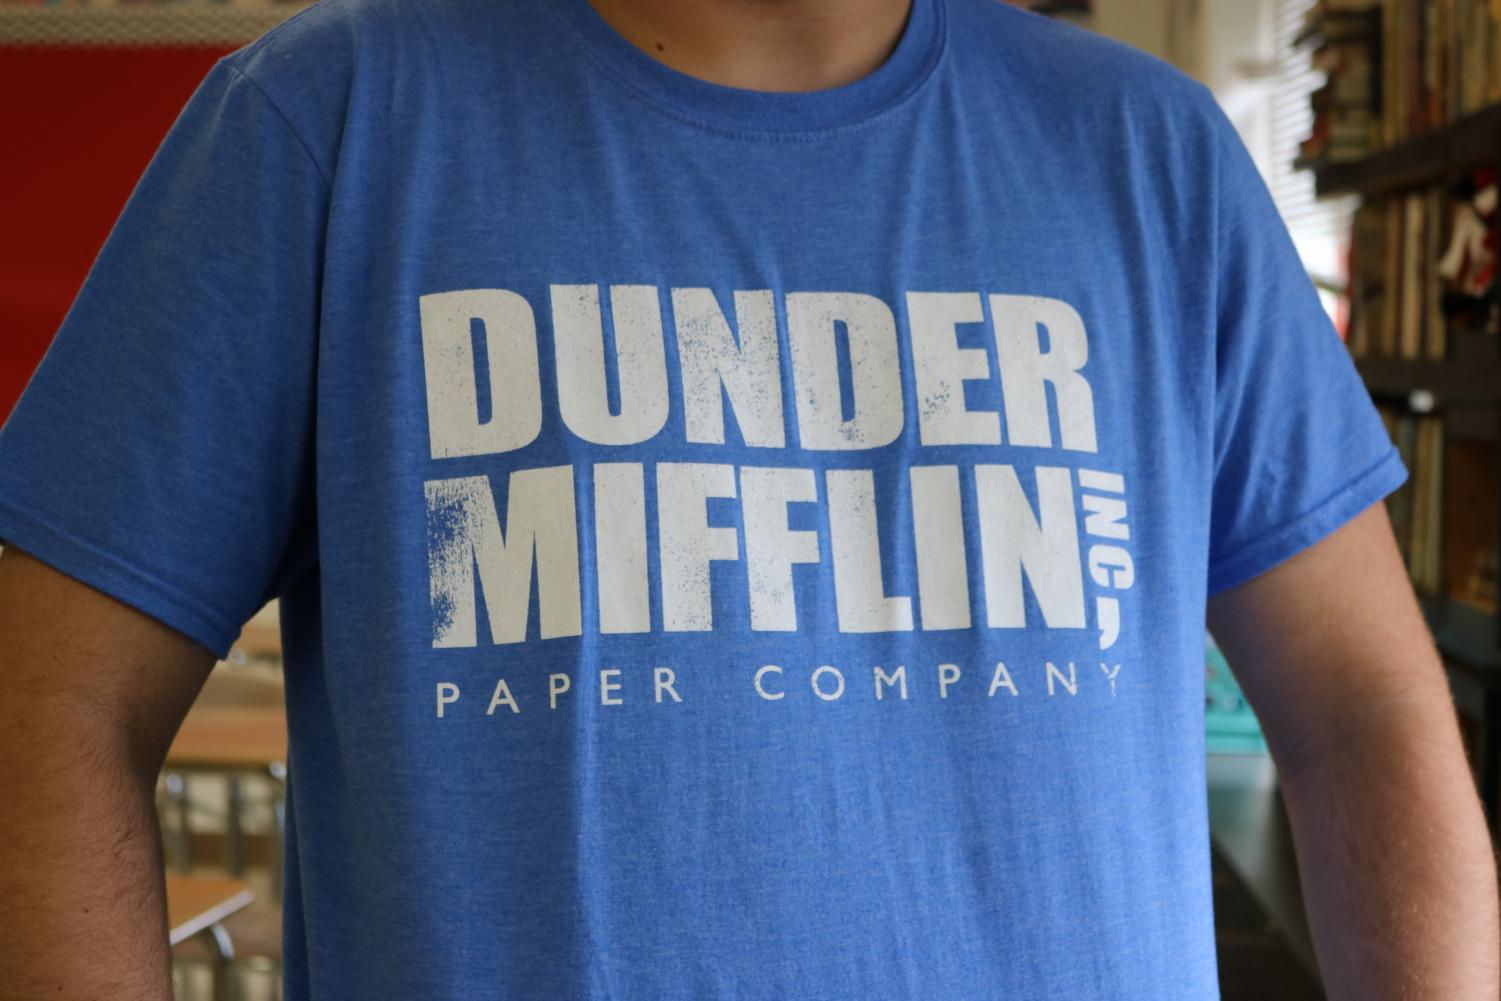 PMHS student sports a Dunder Mifflin t-shirt as an homage to the hit television series (no longer on air), The Office (U.S.).